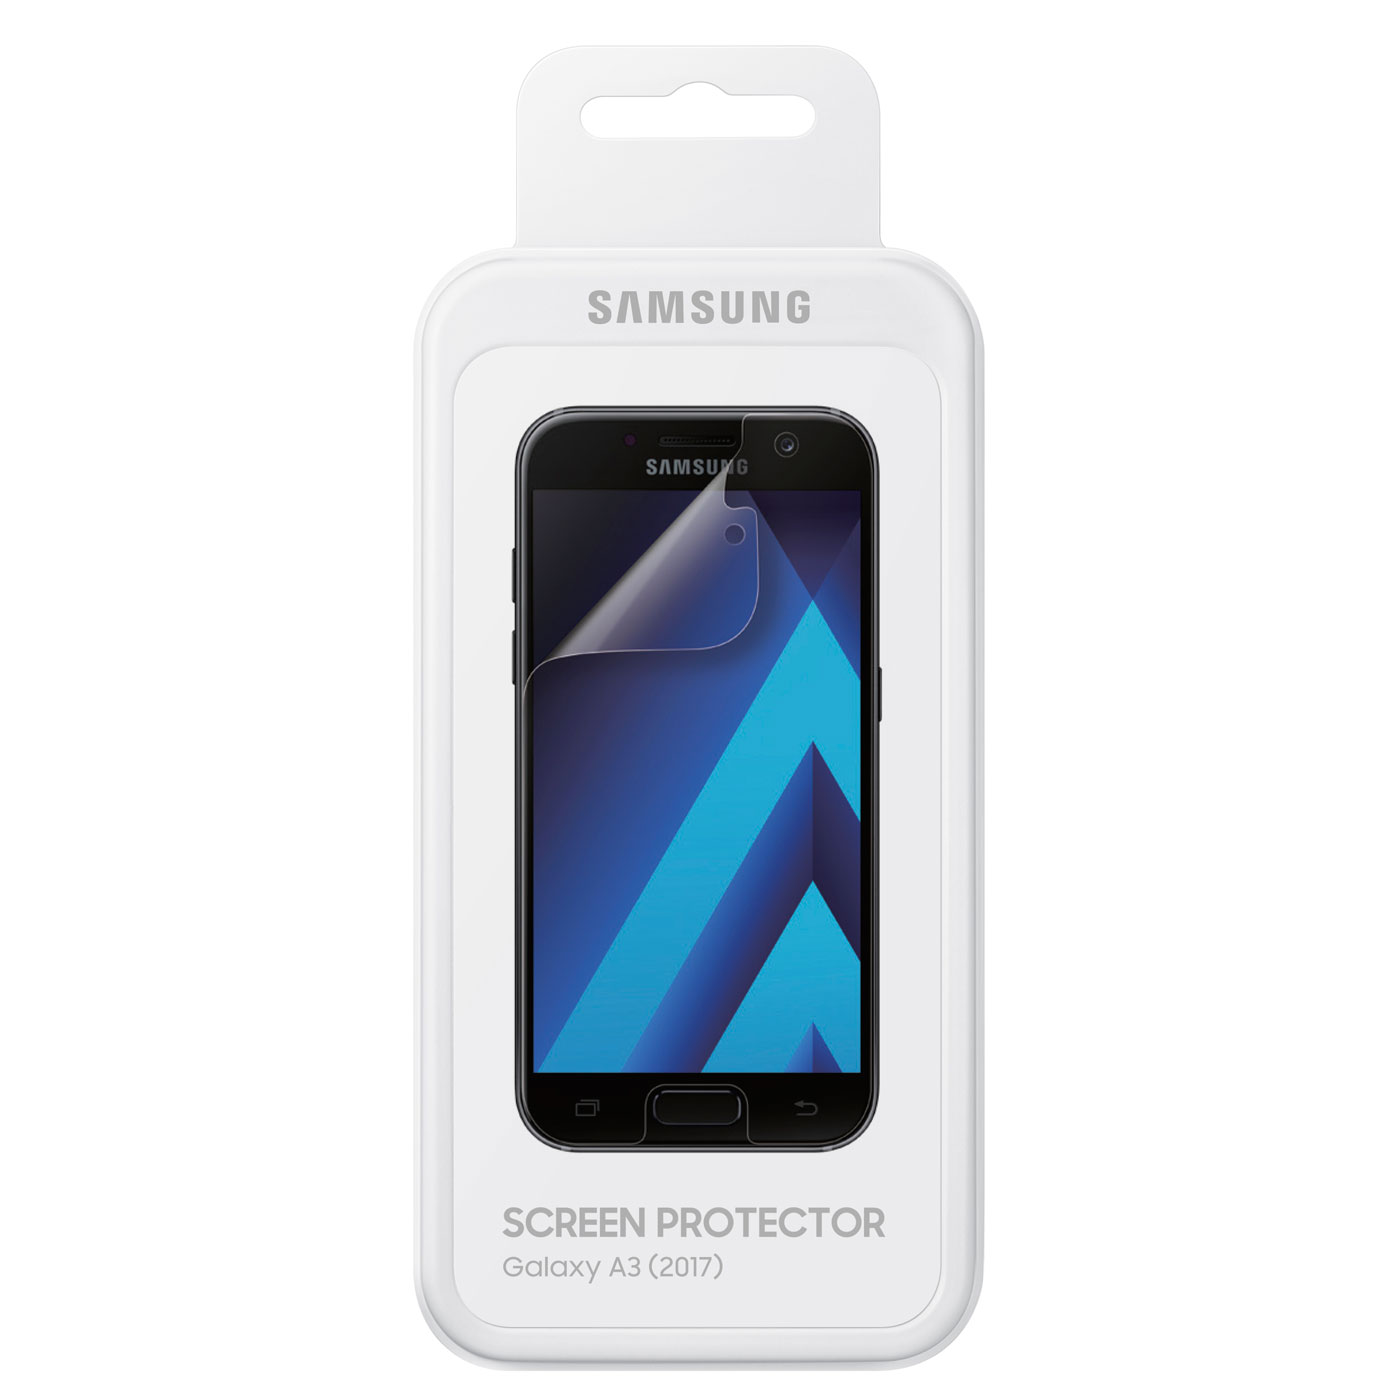 samsung screen protector pour galaxy a3 2017 film protecteur t l phone samsung sur. Black Bedroom Furniture Sets. Home Design Ideas